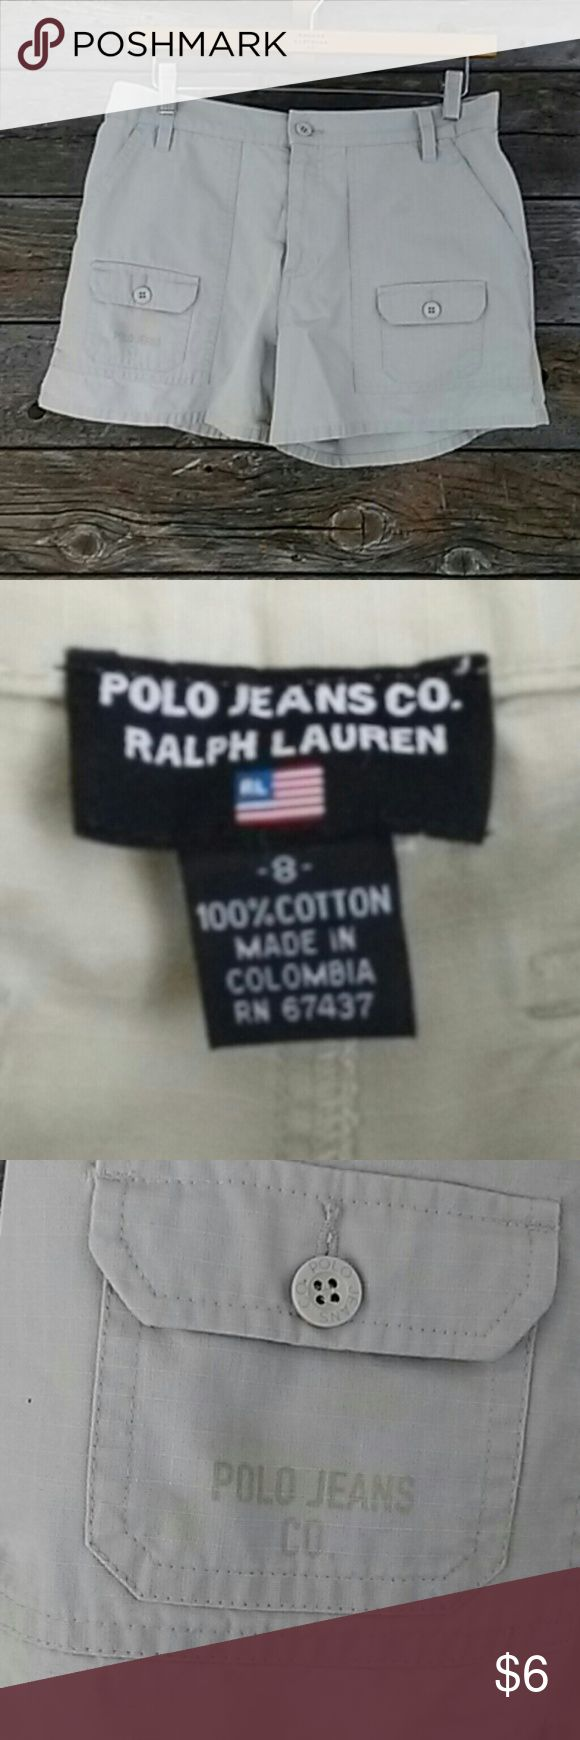 Polo Jeans Co. Ralph Lauren cotton shorts. Size 8 Polo Jeans Co. Ralph Lauren cotton shorts. Size 8. Pockets in front and back of shorts. Has smaller spot near front bottom pocket near where it says Polo Jeans Co. On pocket (see picture). Super cute shorts Polo Jean Co. Ralph Lauren  Shorts Jean Shorts